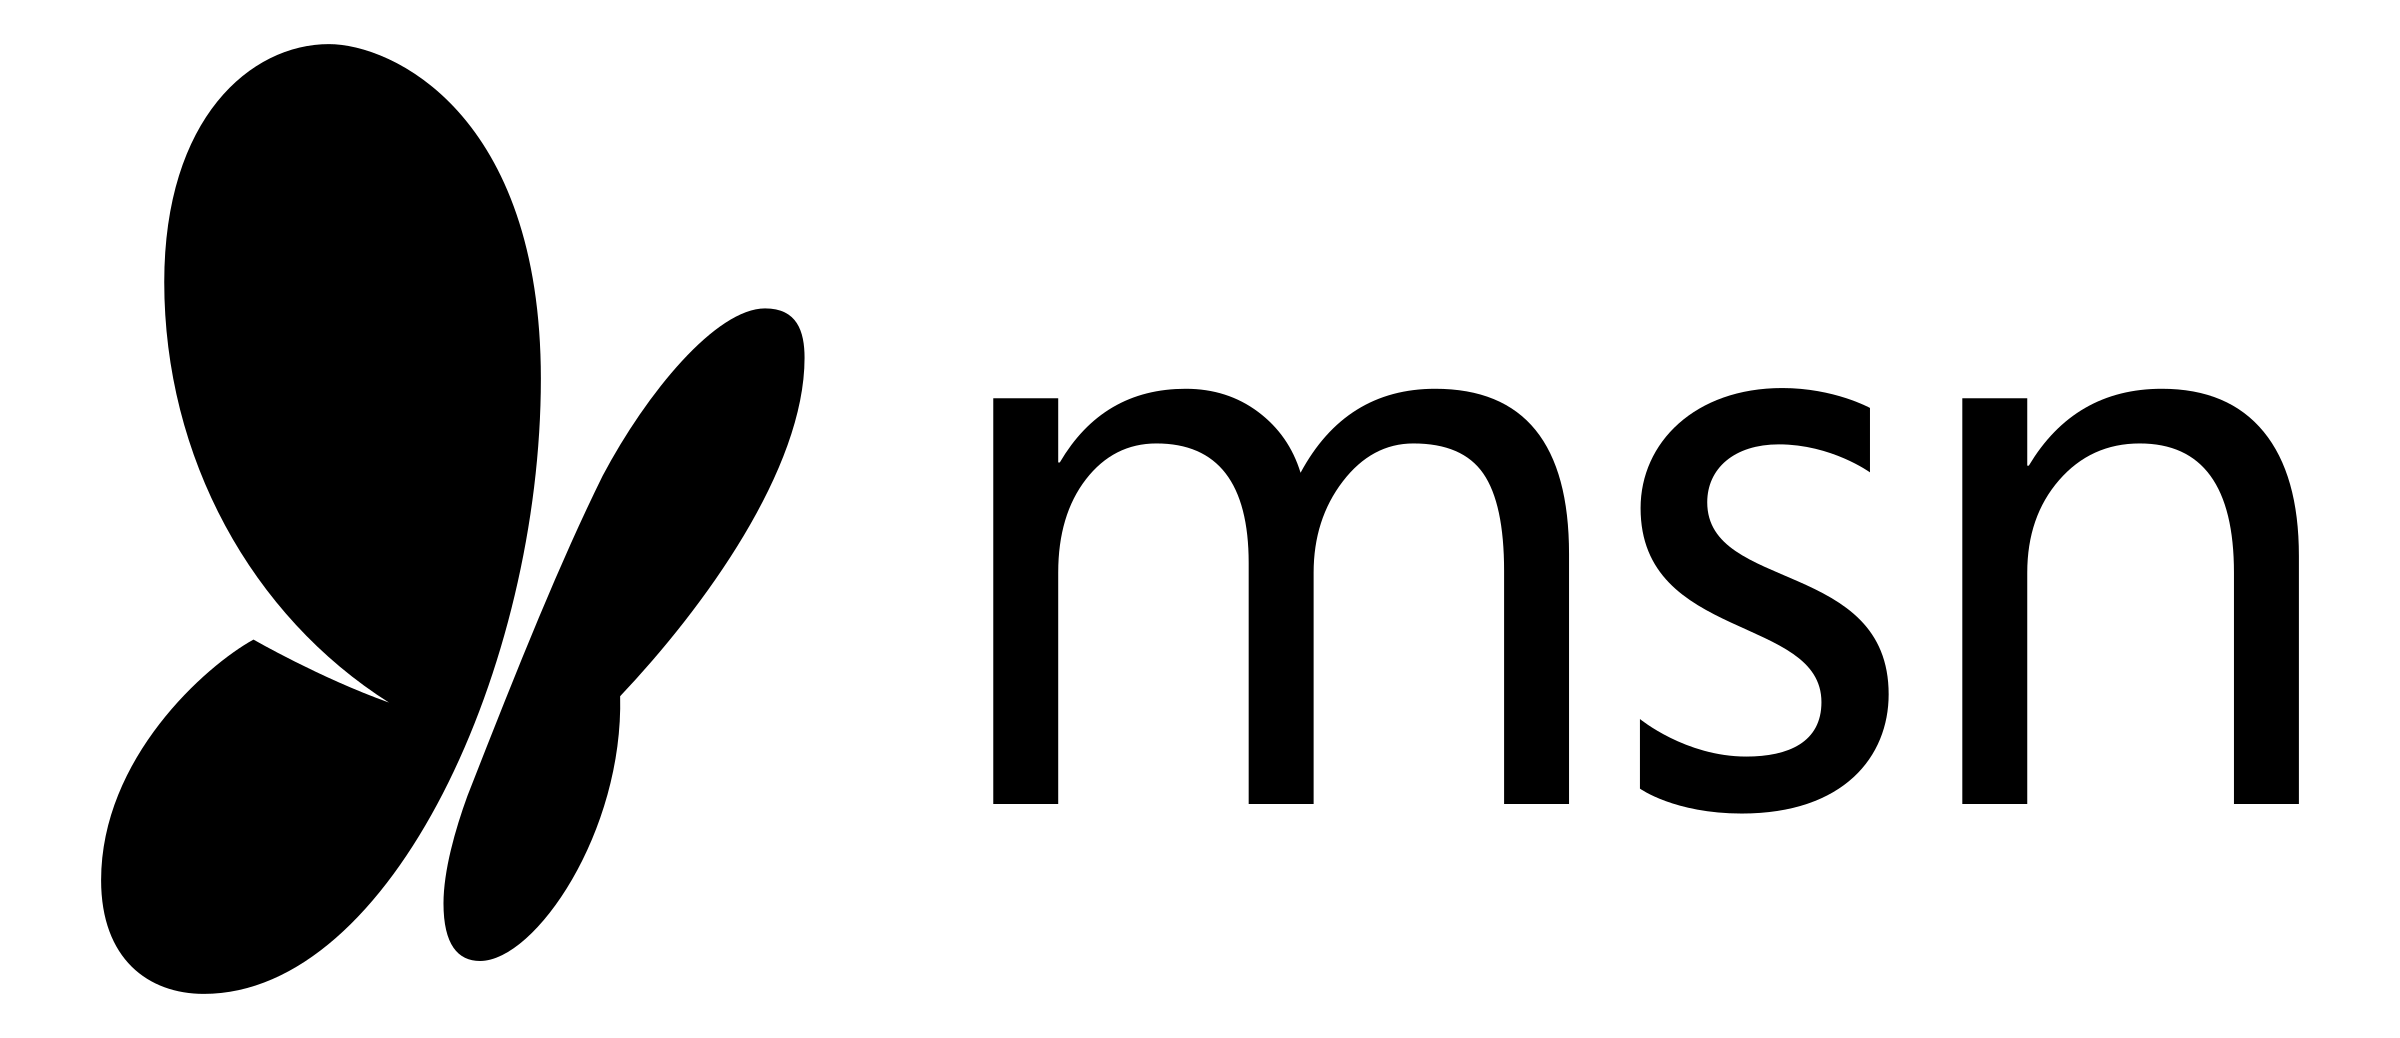 msn-logo-transparent.png